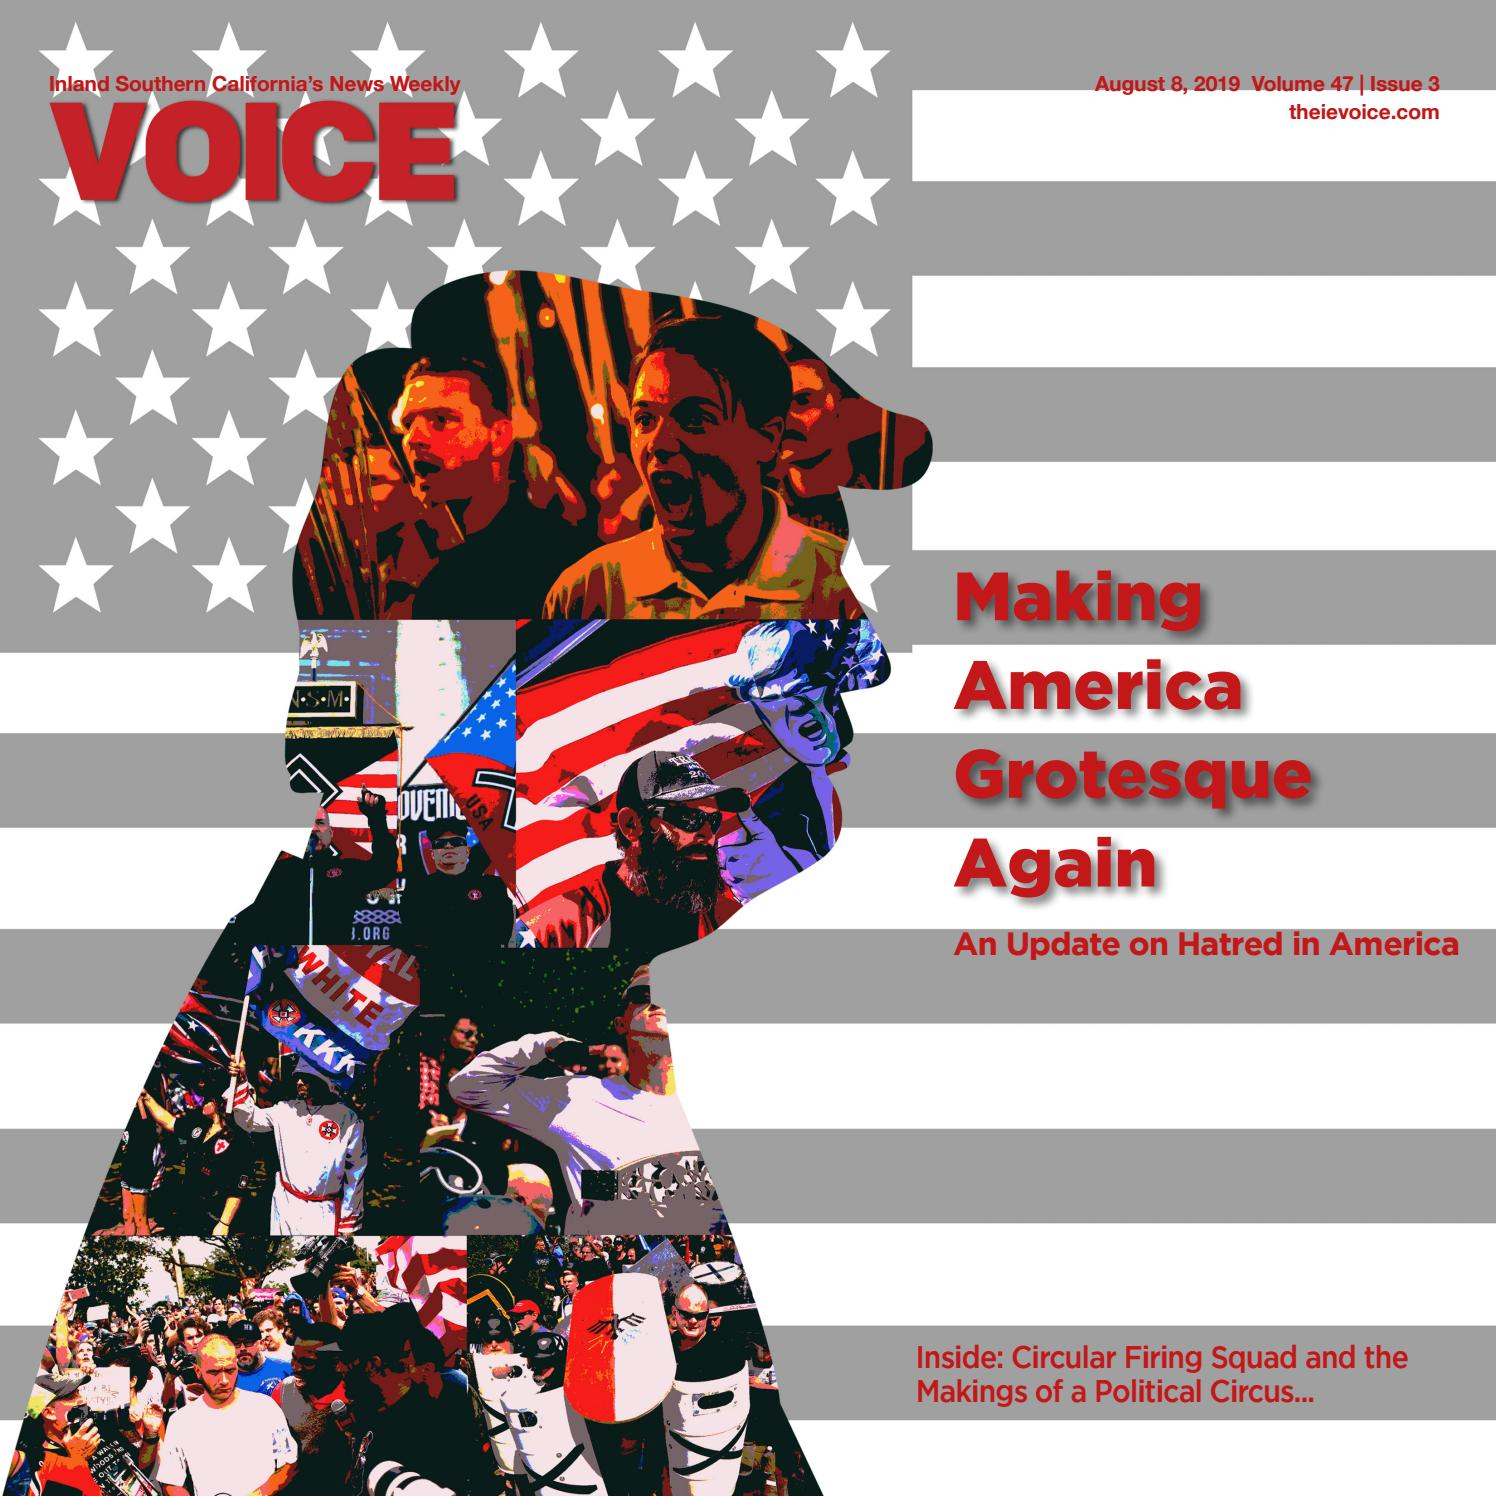 VOICE Issue August 8, 2019 by Brown Publishing Co - issuu